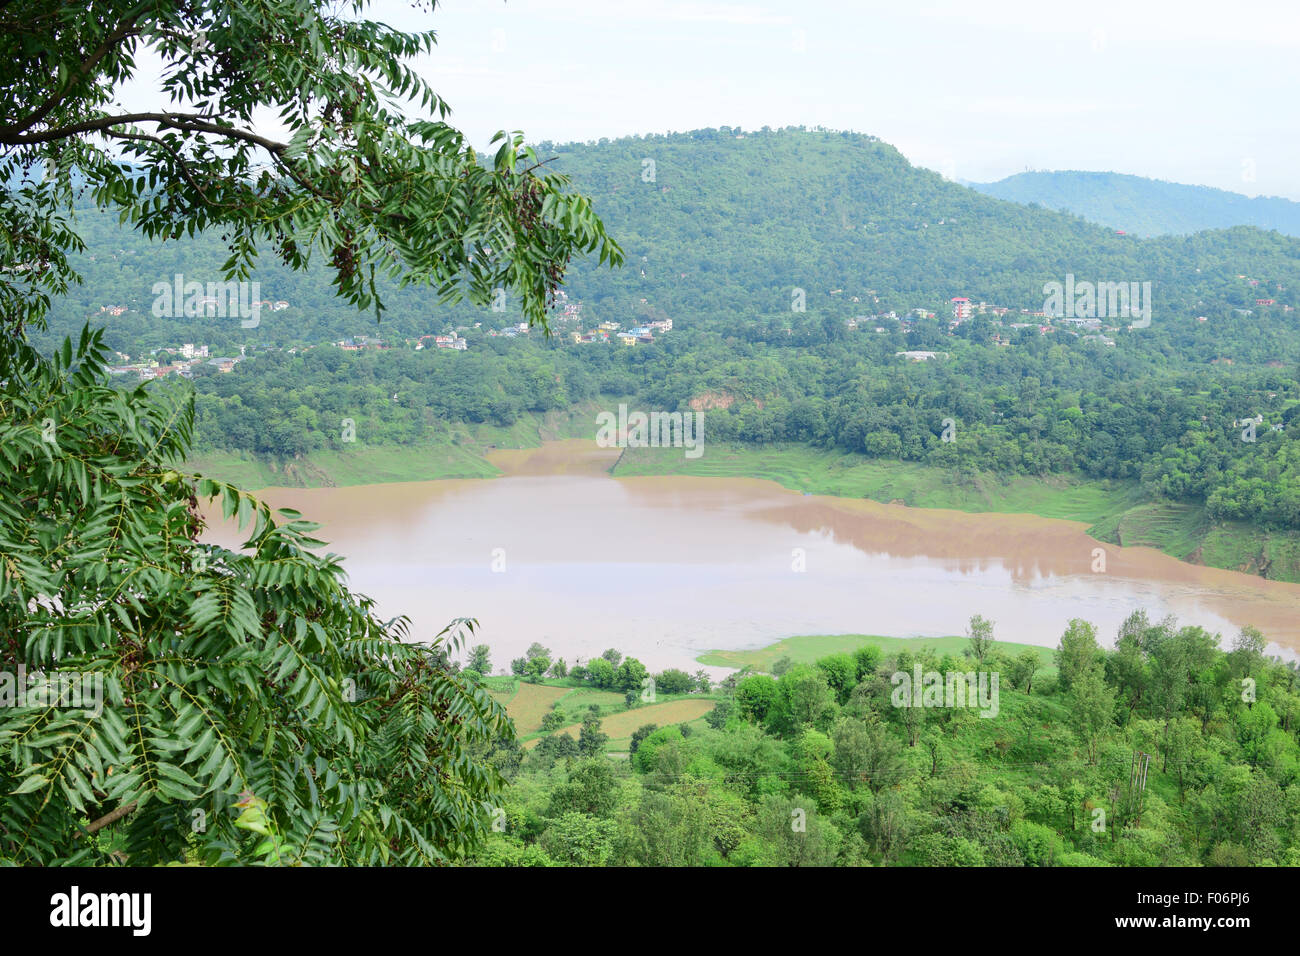 Beautiful Himachal Pradesh on the Sutlej River Valley at Bilaspur in Himachal Pradesh State of India - Stock Image